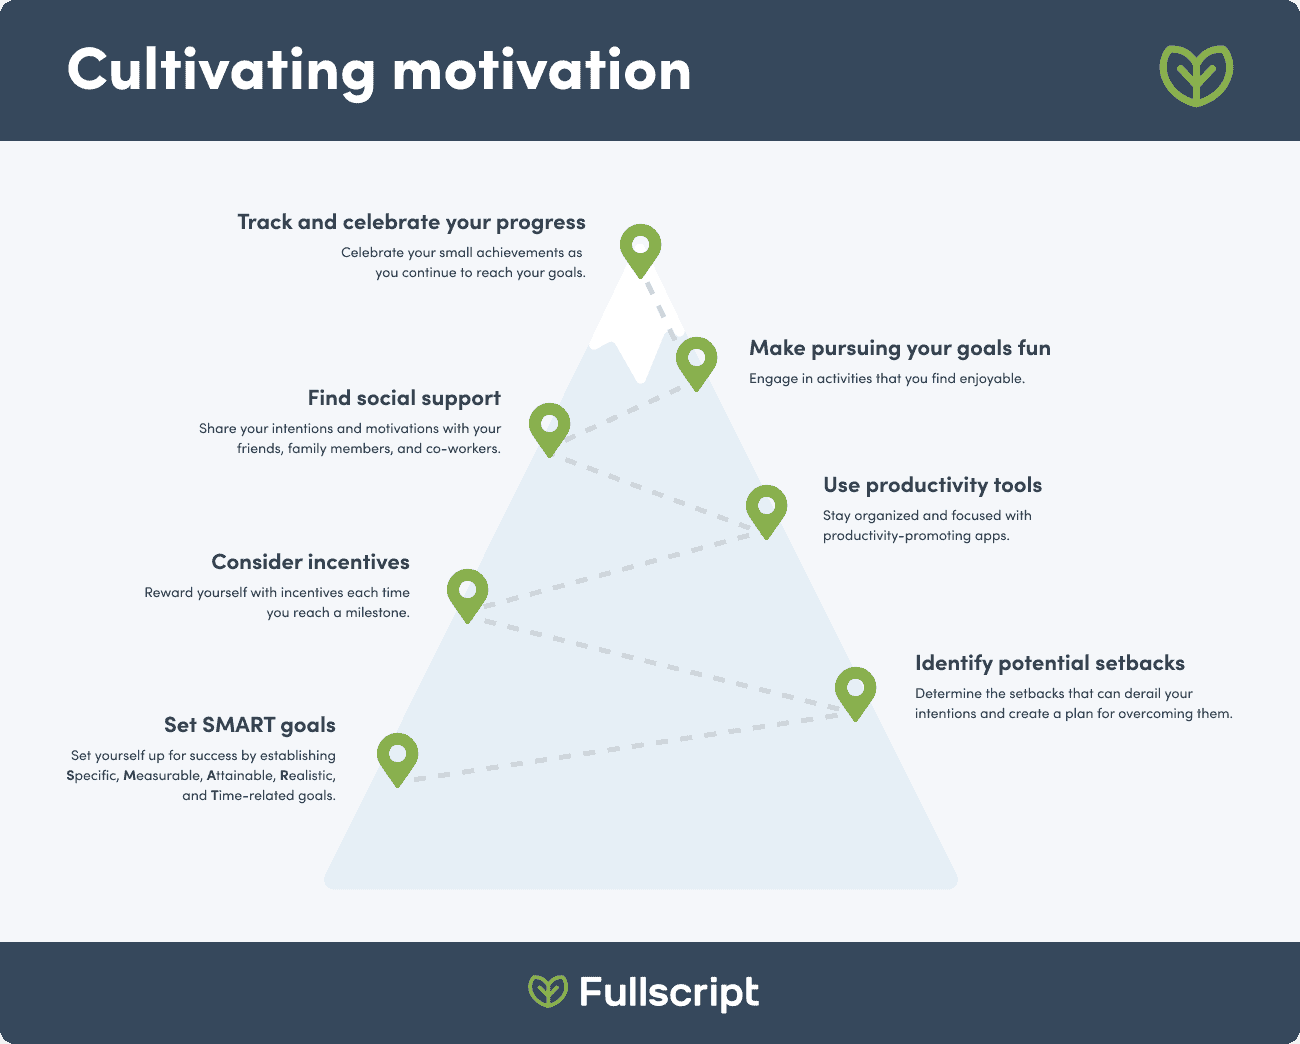 graphic with a mountain shaped journey of all the motivation factors and tips